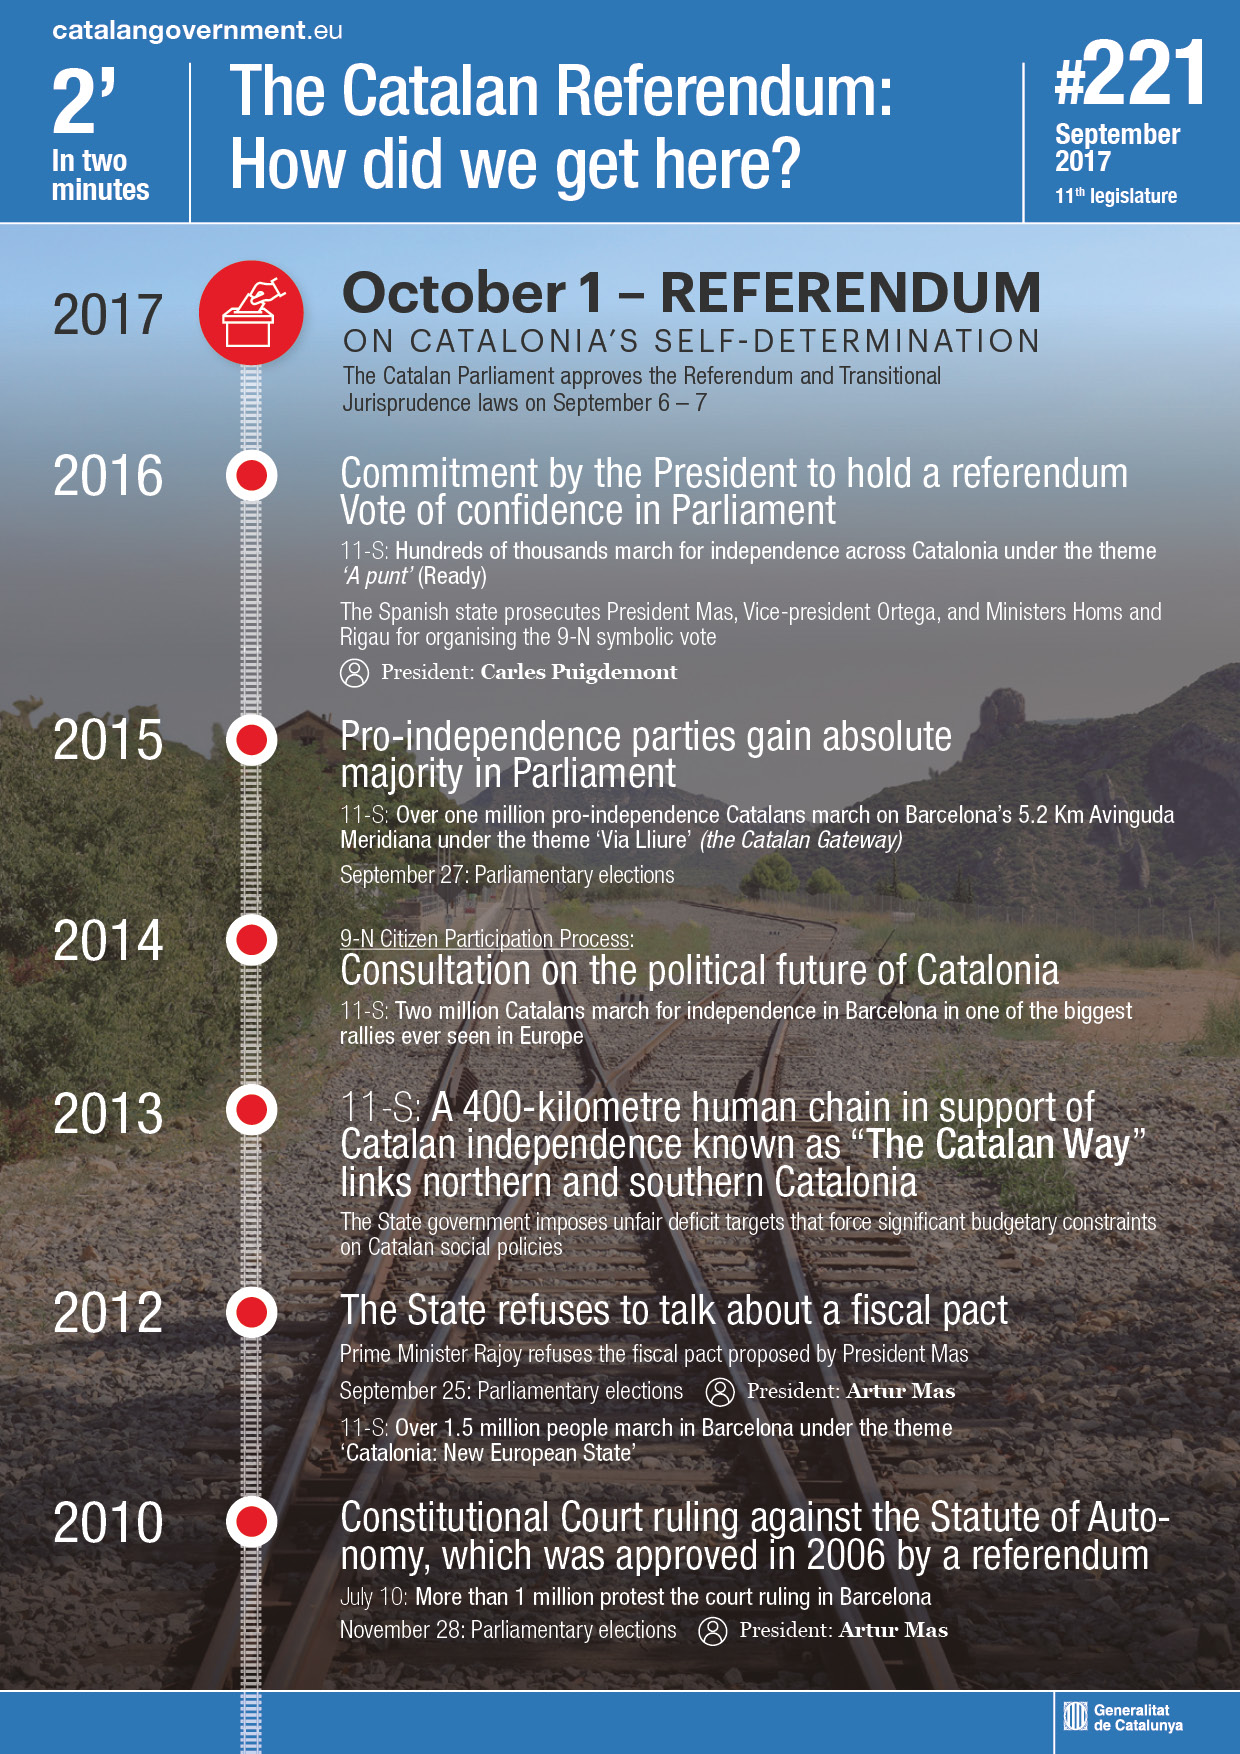 The Catalan referendum: How did we get here?